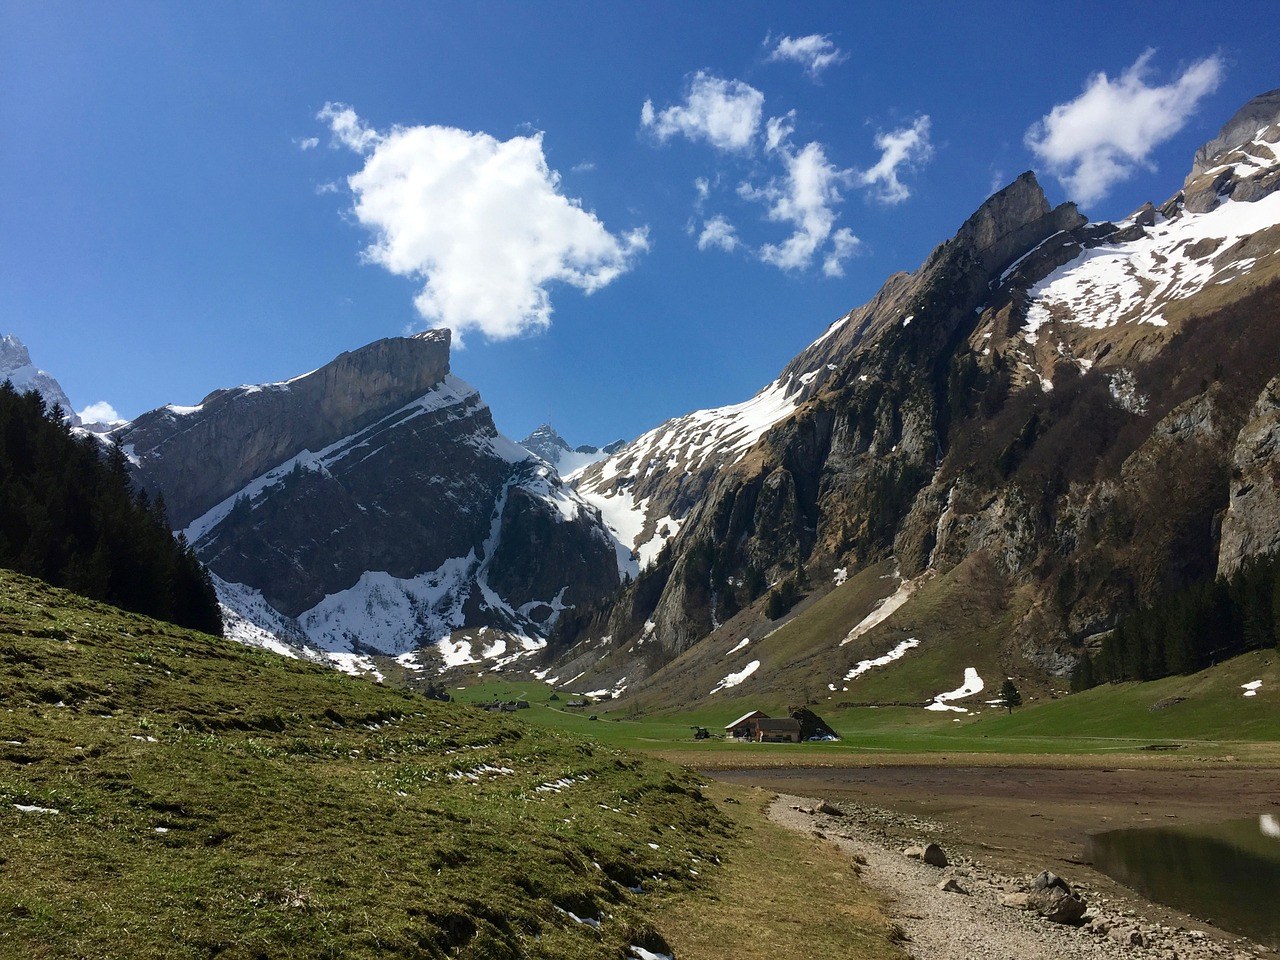 Hut-to-Hut Hikes in the Alps